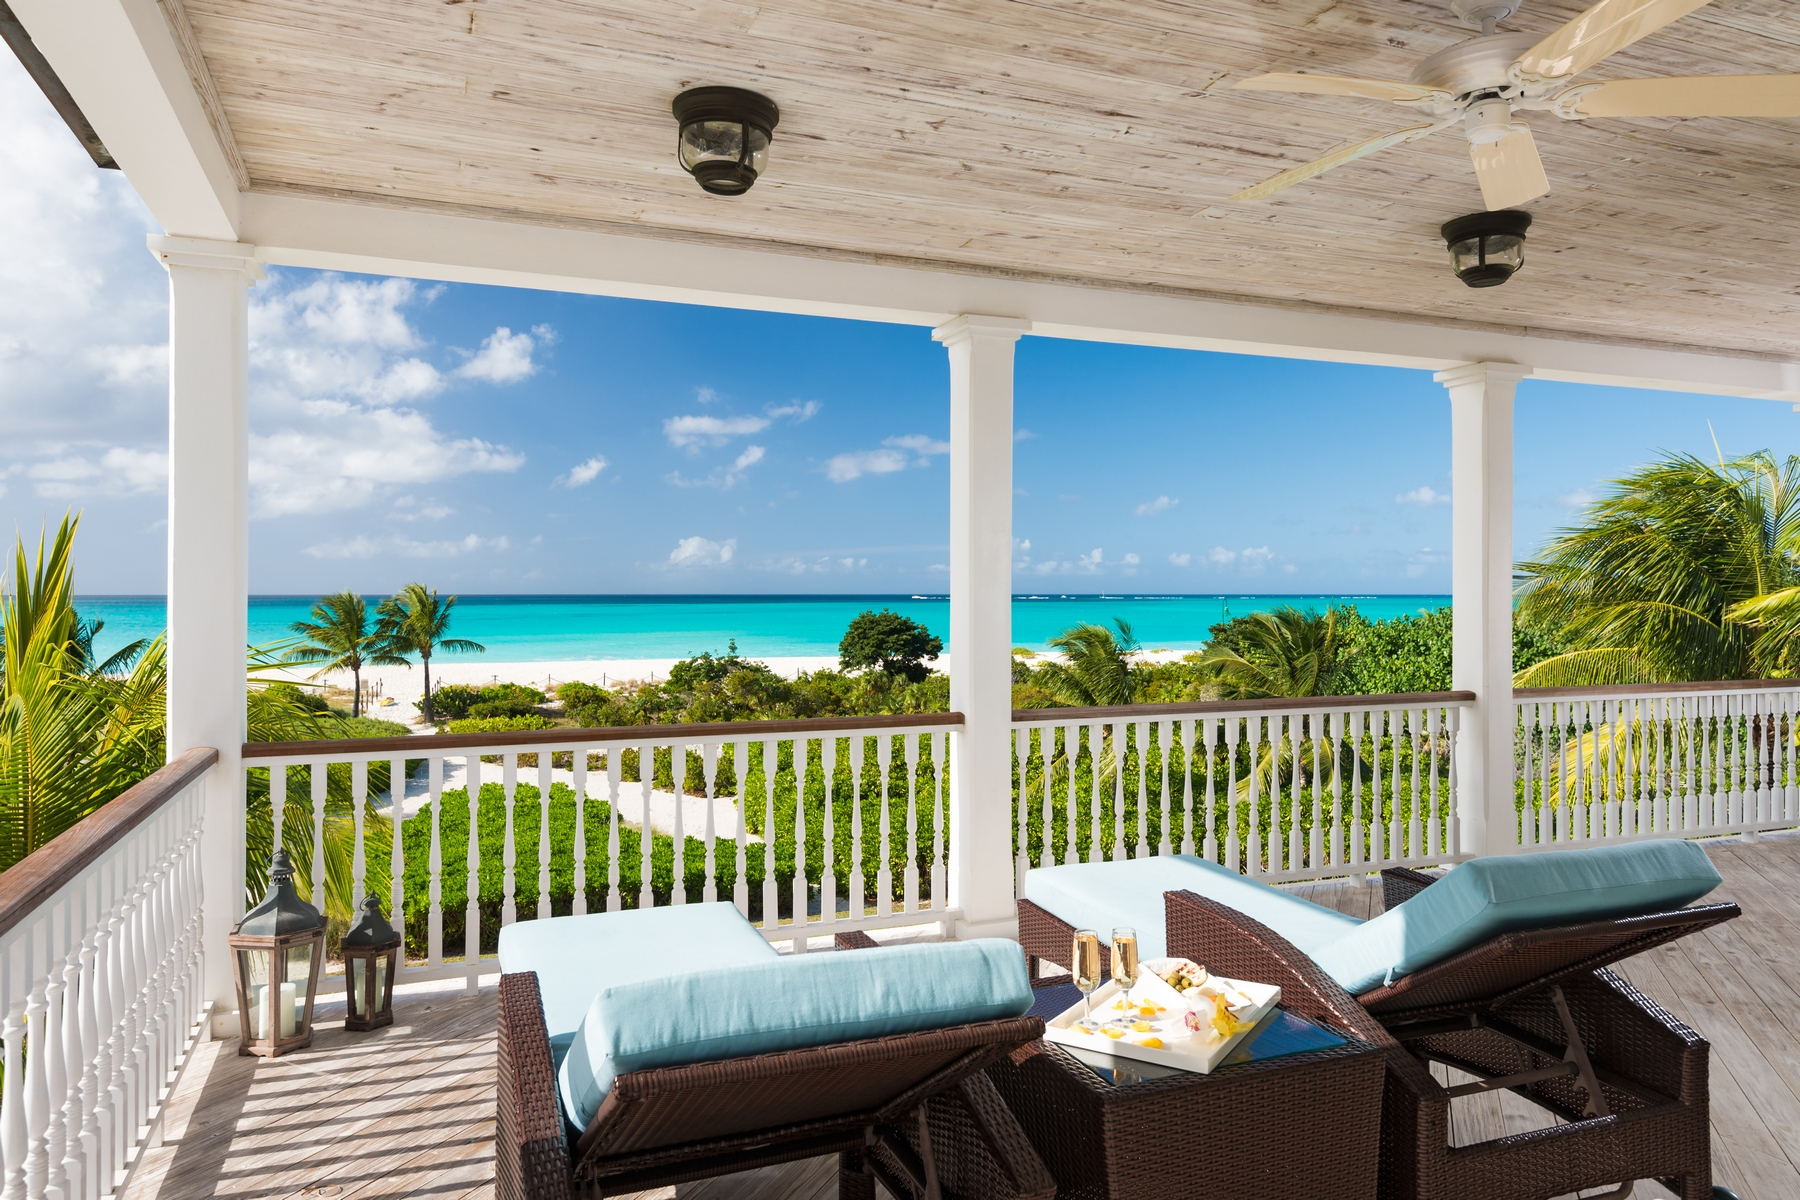 Additional photo for property listing at Amazing Grace   Vacation Rental 106 Prince of Wales Drive Grace Bay, Провиденсьялес TCI BWI Теркс И Кайкос